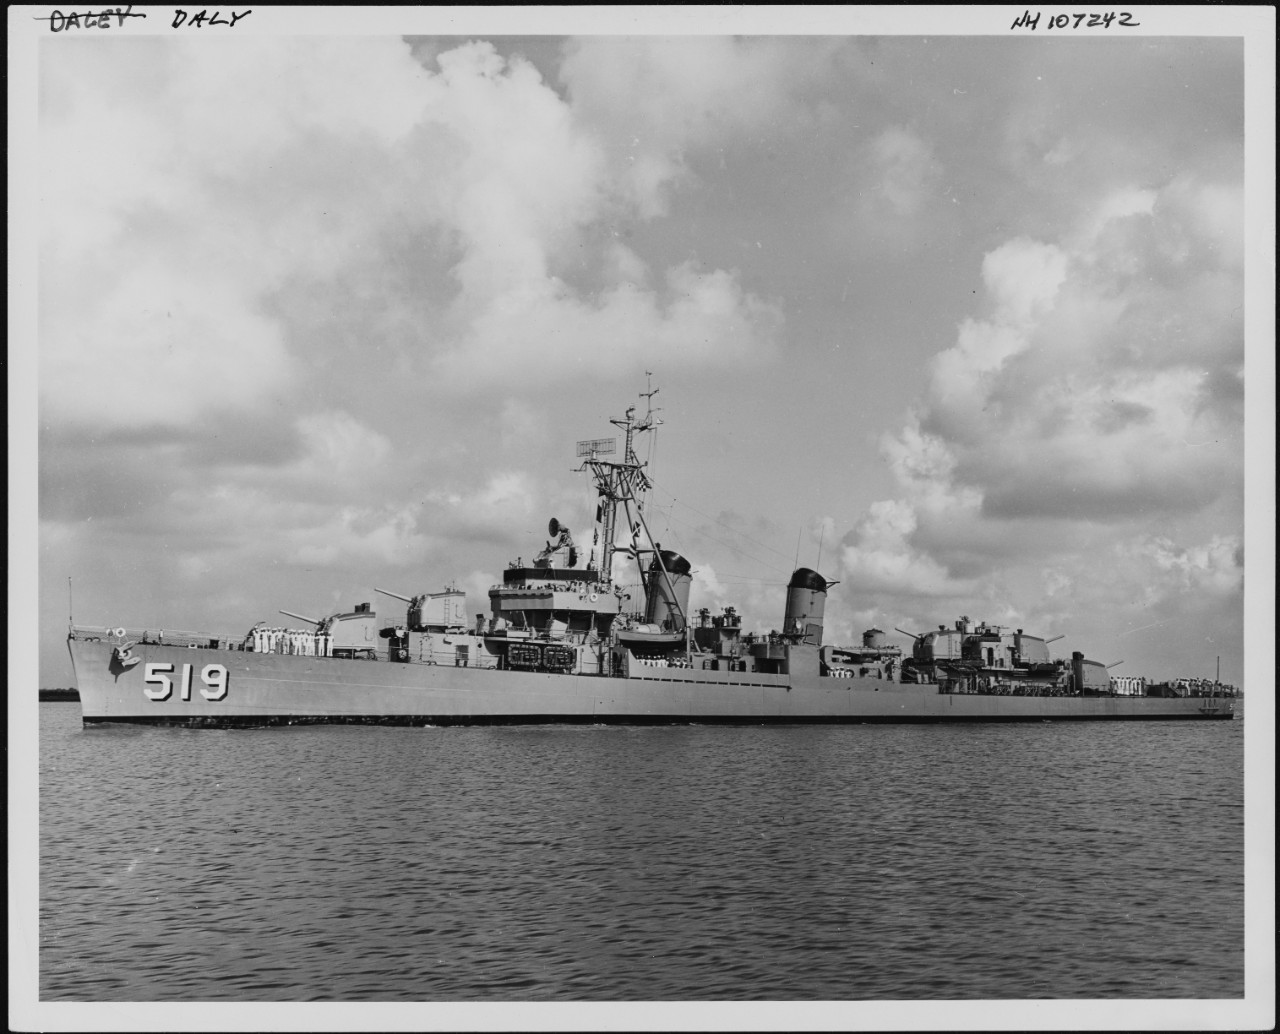 Photo #: NH 107242  USS Daly